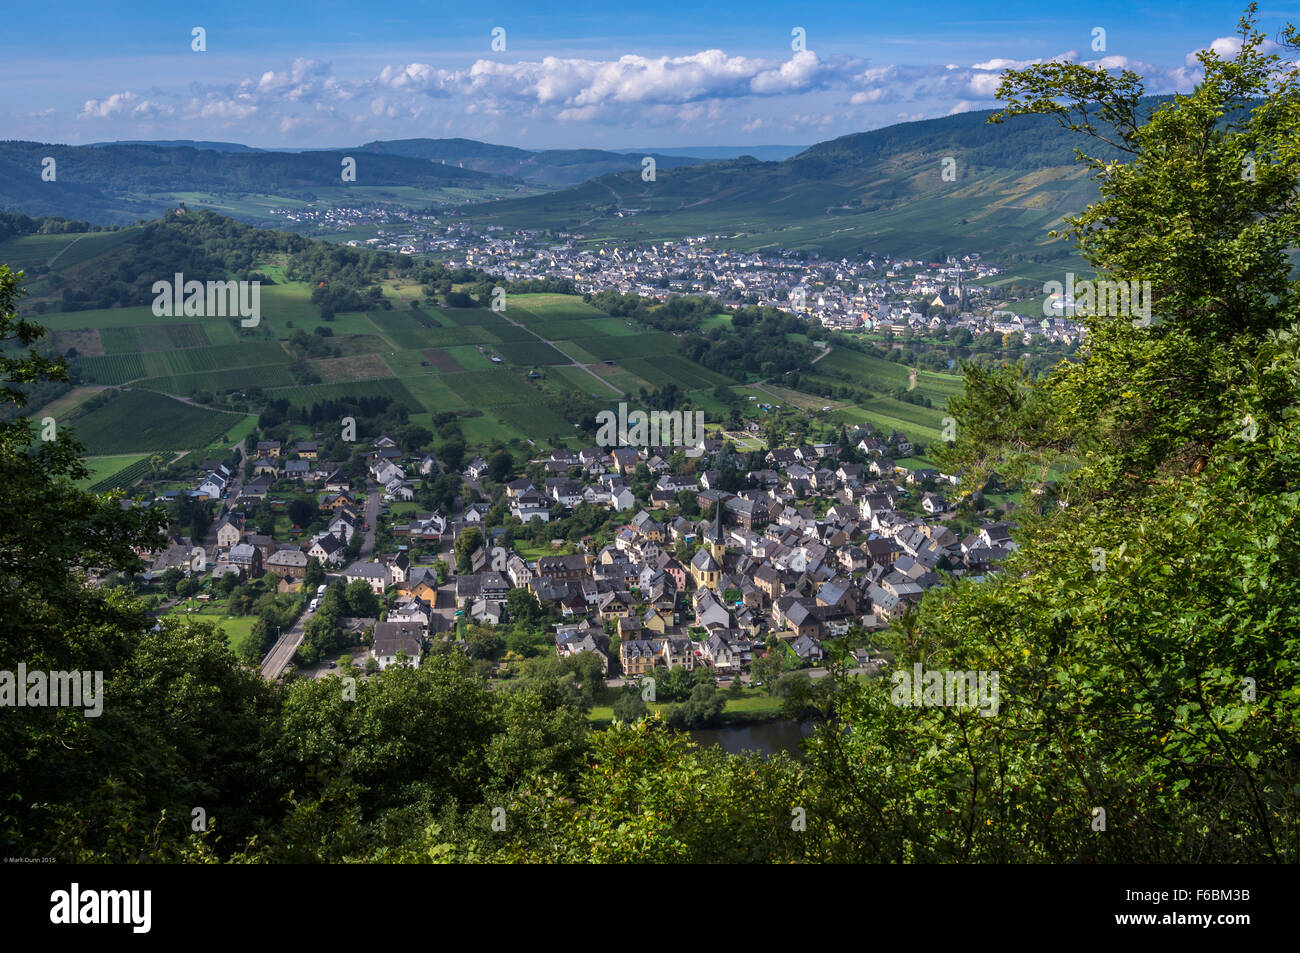 wolf-and-krv-wine-village-seen-from-mont-royal-on-the-mosel-river-F6BM3B.jpg